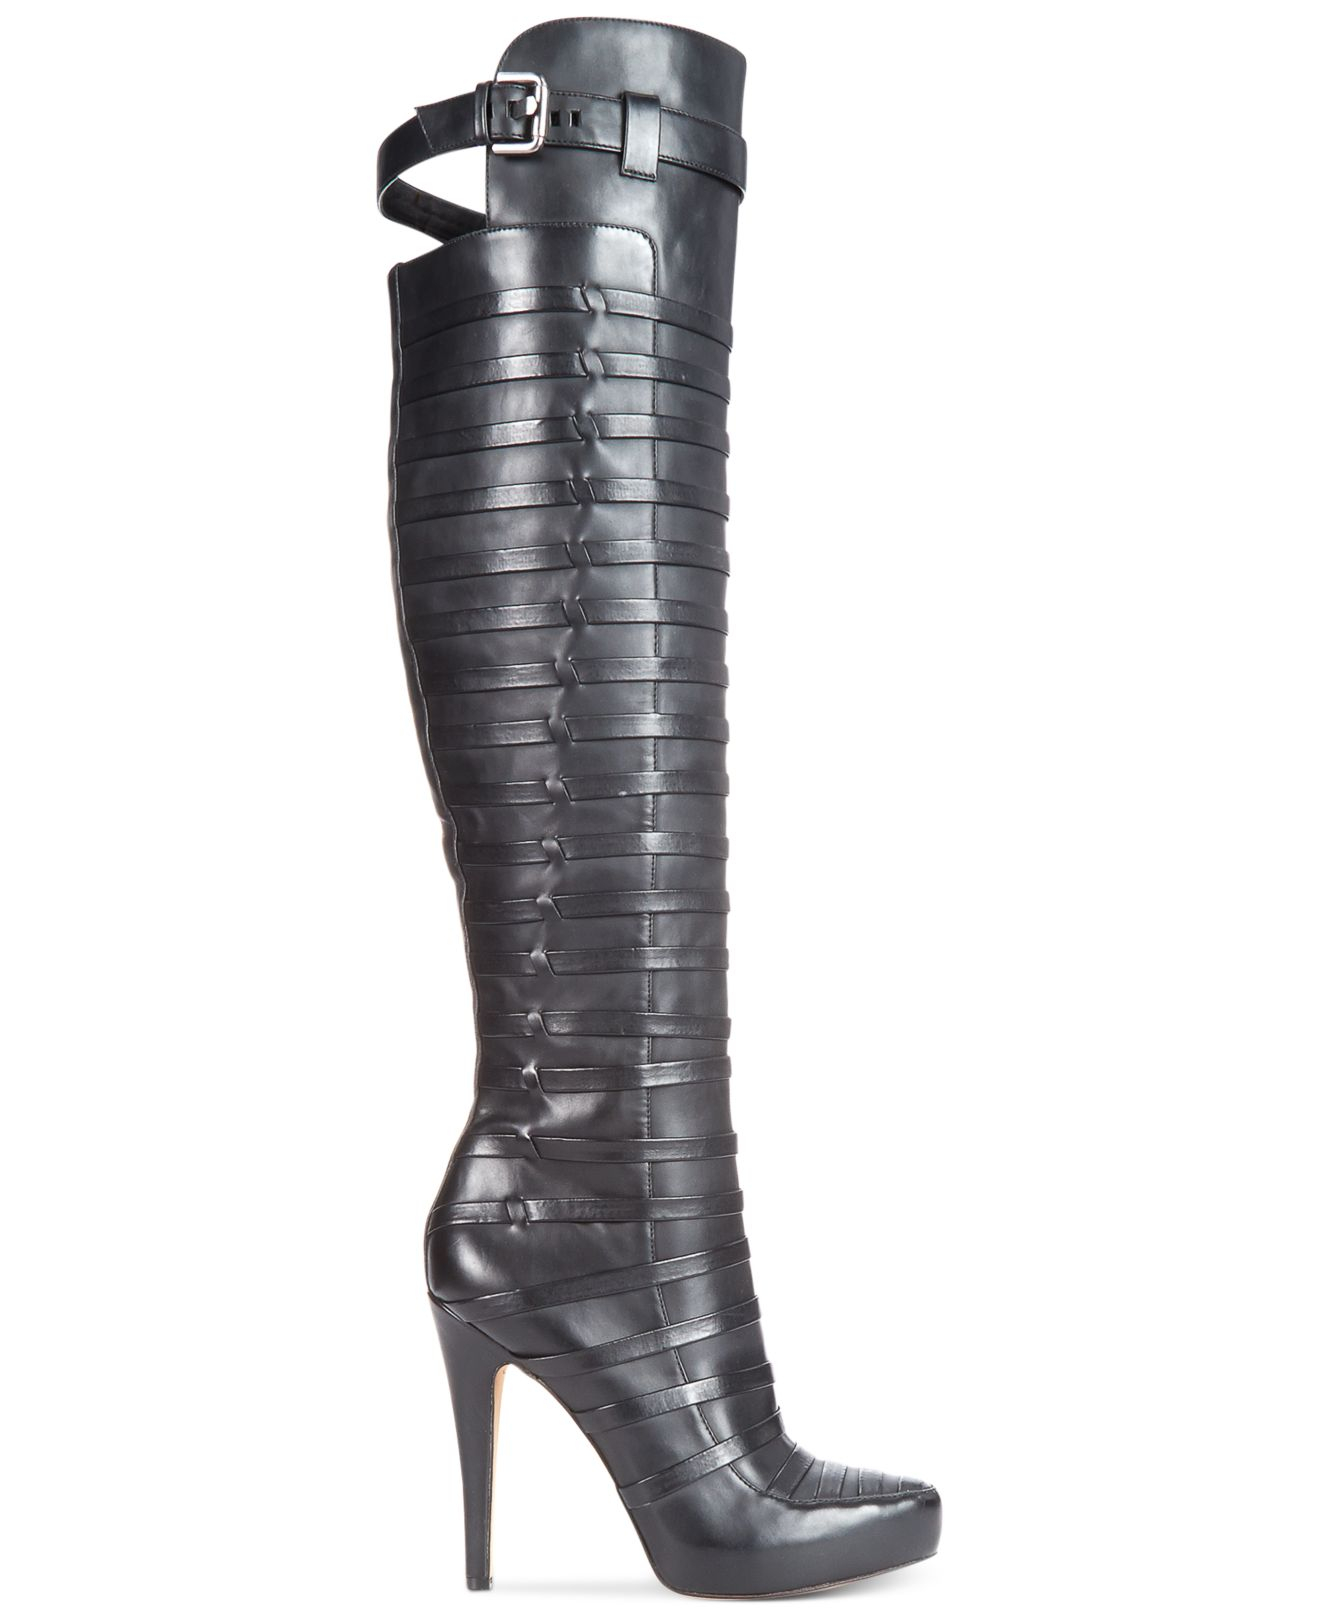 ee9cacaaa76304 Lyst - Circus by Sam Edelman Kallie Over-The-Knee Dress Boots in Black